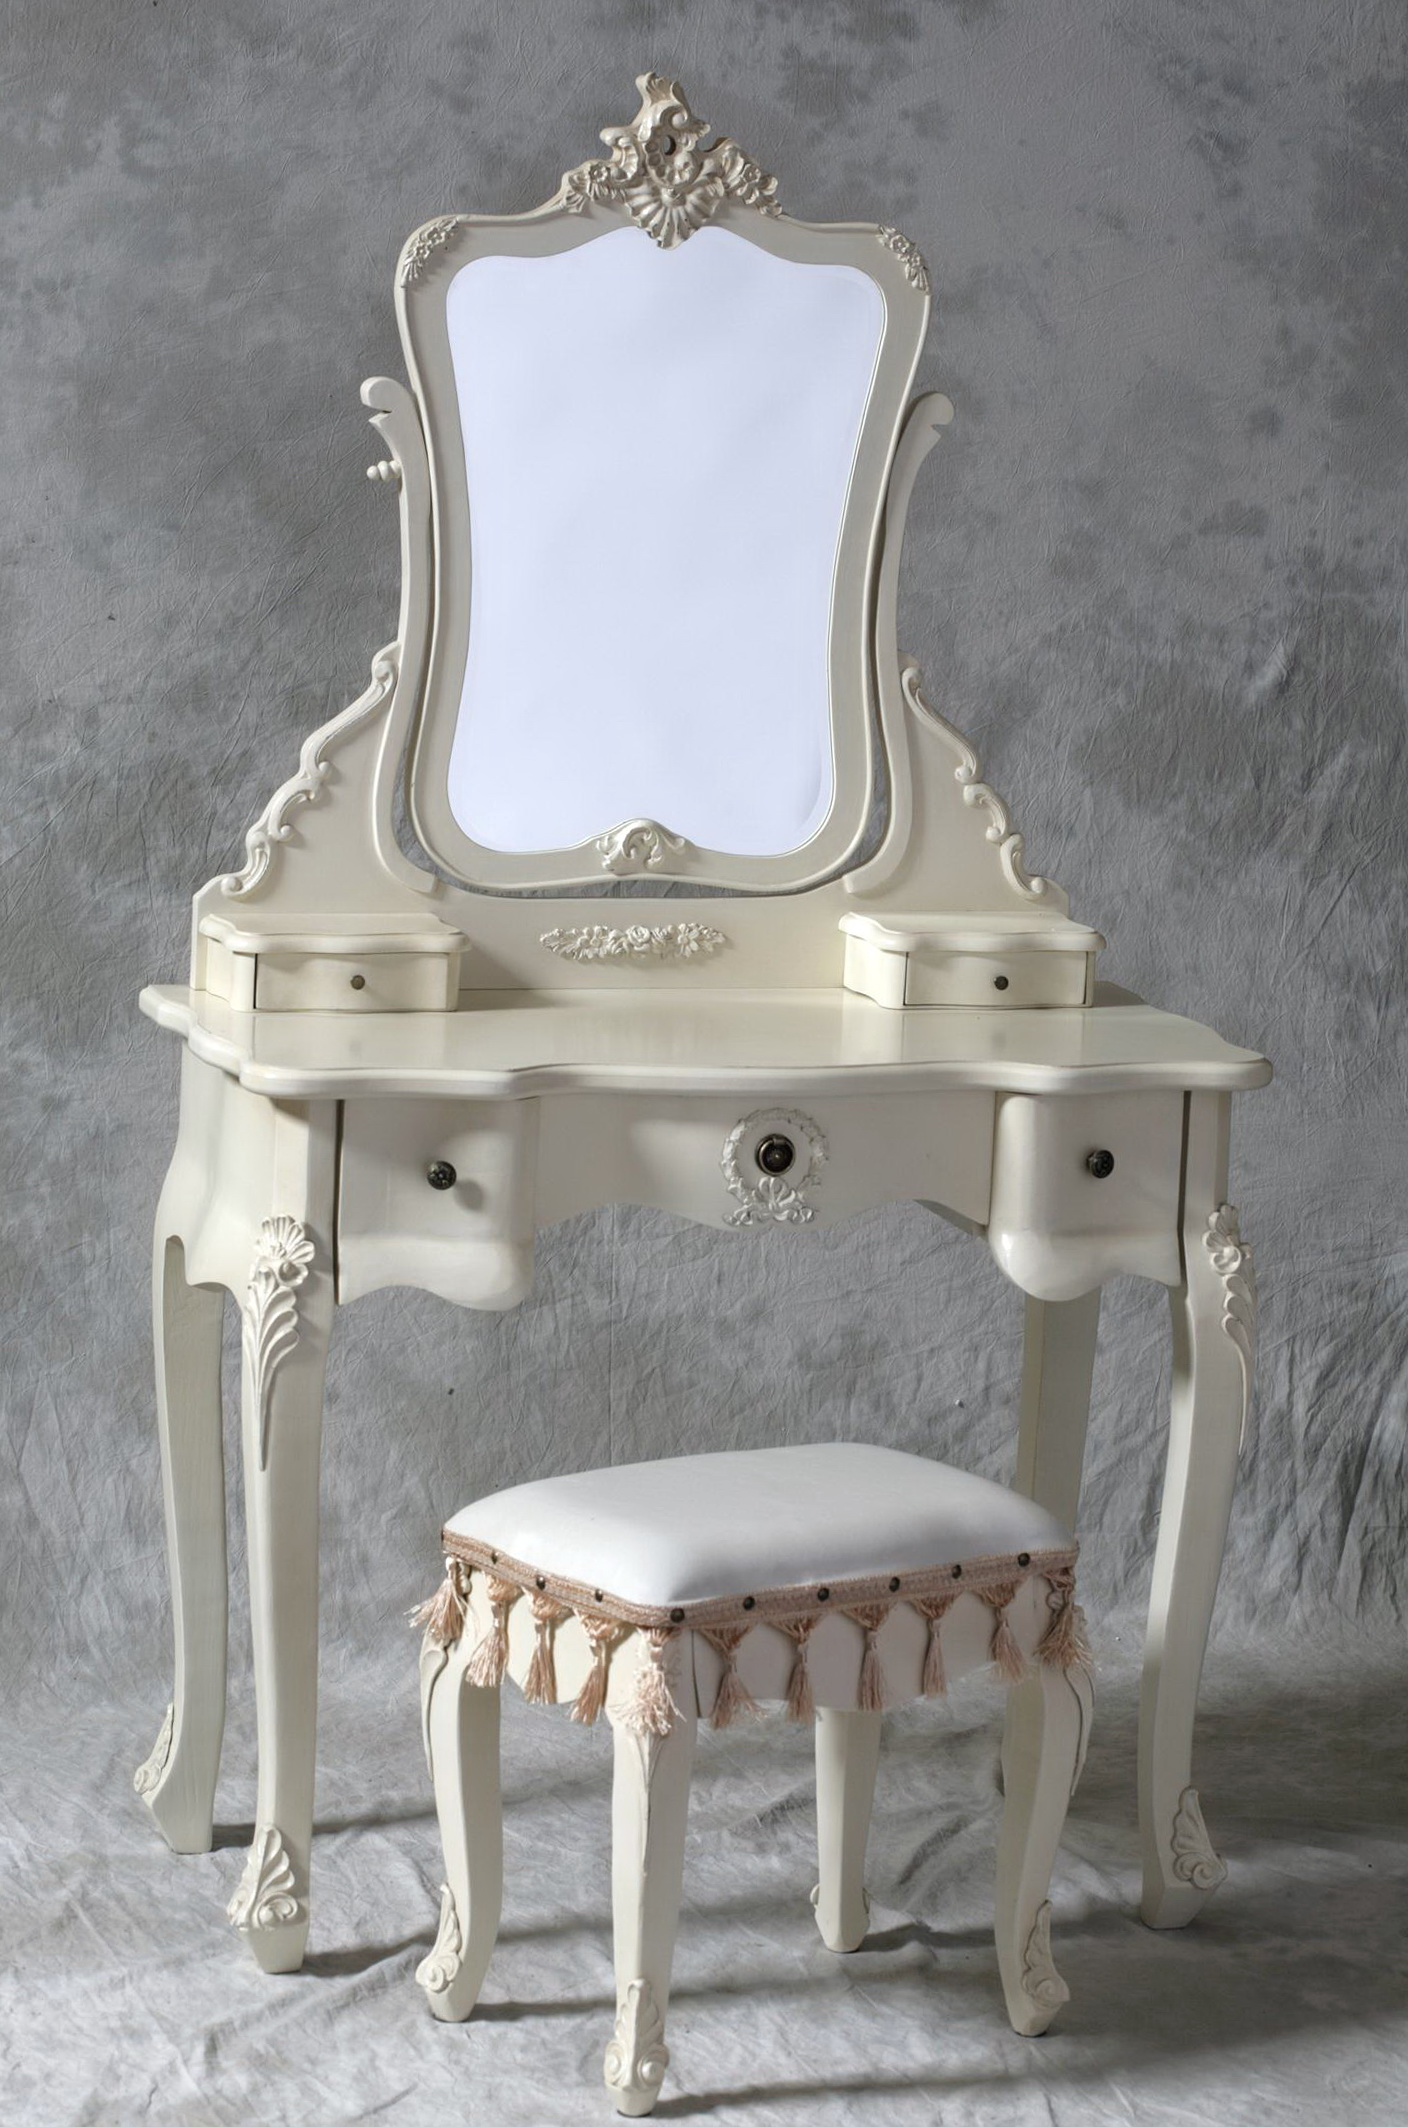 Small mirrored vanity table home design ideas small mirrored vanity table geotapseo Choice Image